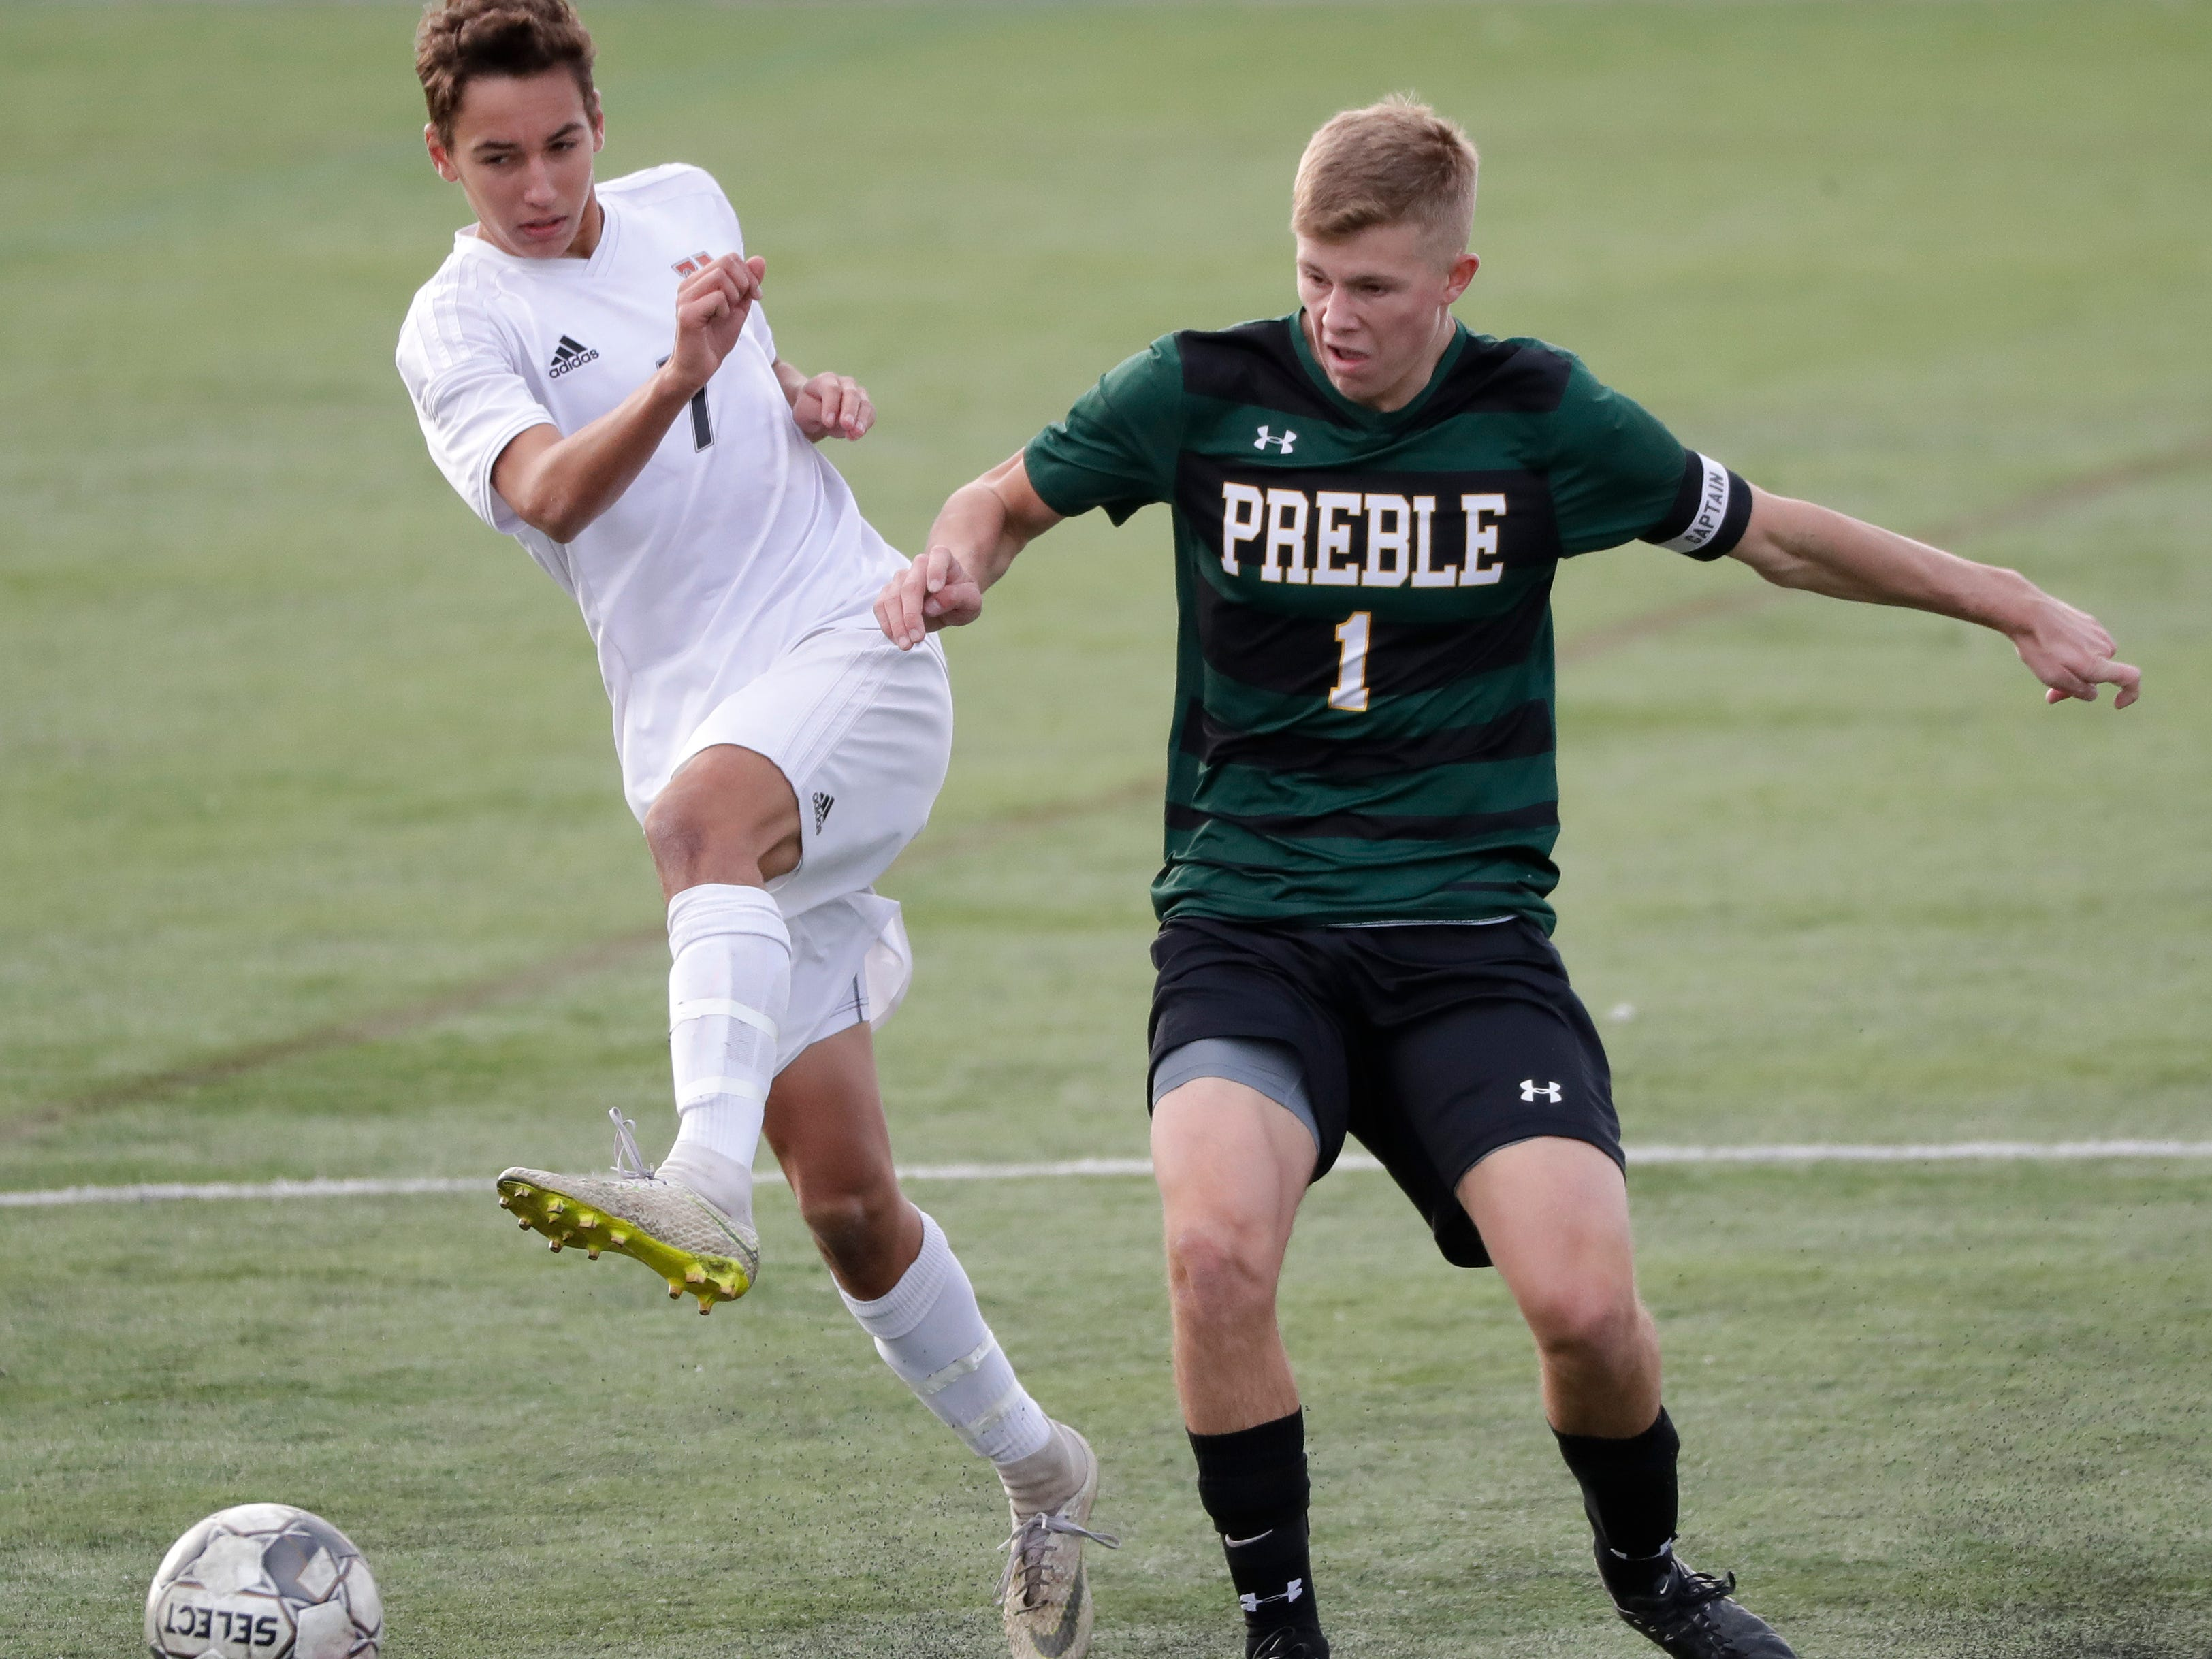 Green Bay Preble High School's Nick Hummel (1) goes up  against Hamilton High School's Trevor Millonzi (7) during their WIAA Division 1 state semifinal boys soccer game Friday, November 2, 2018, at Uihlein Soccer Park in Milwaukee, Wis.